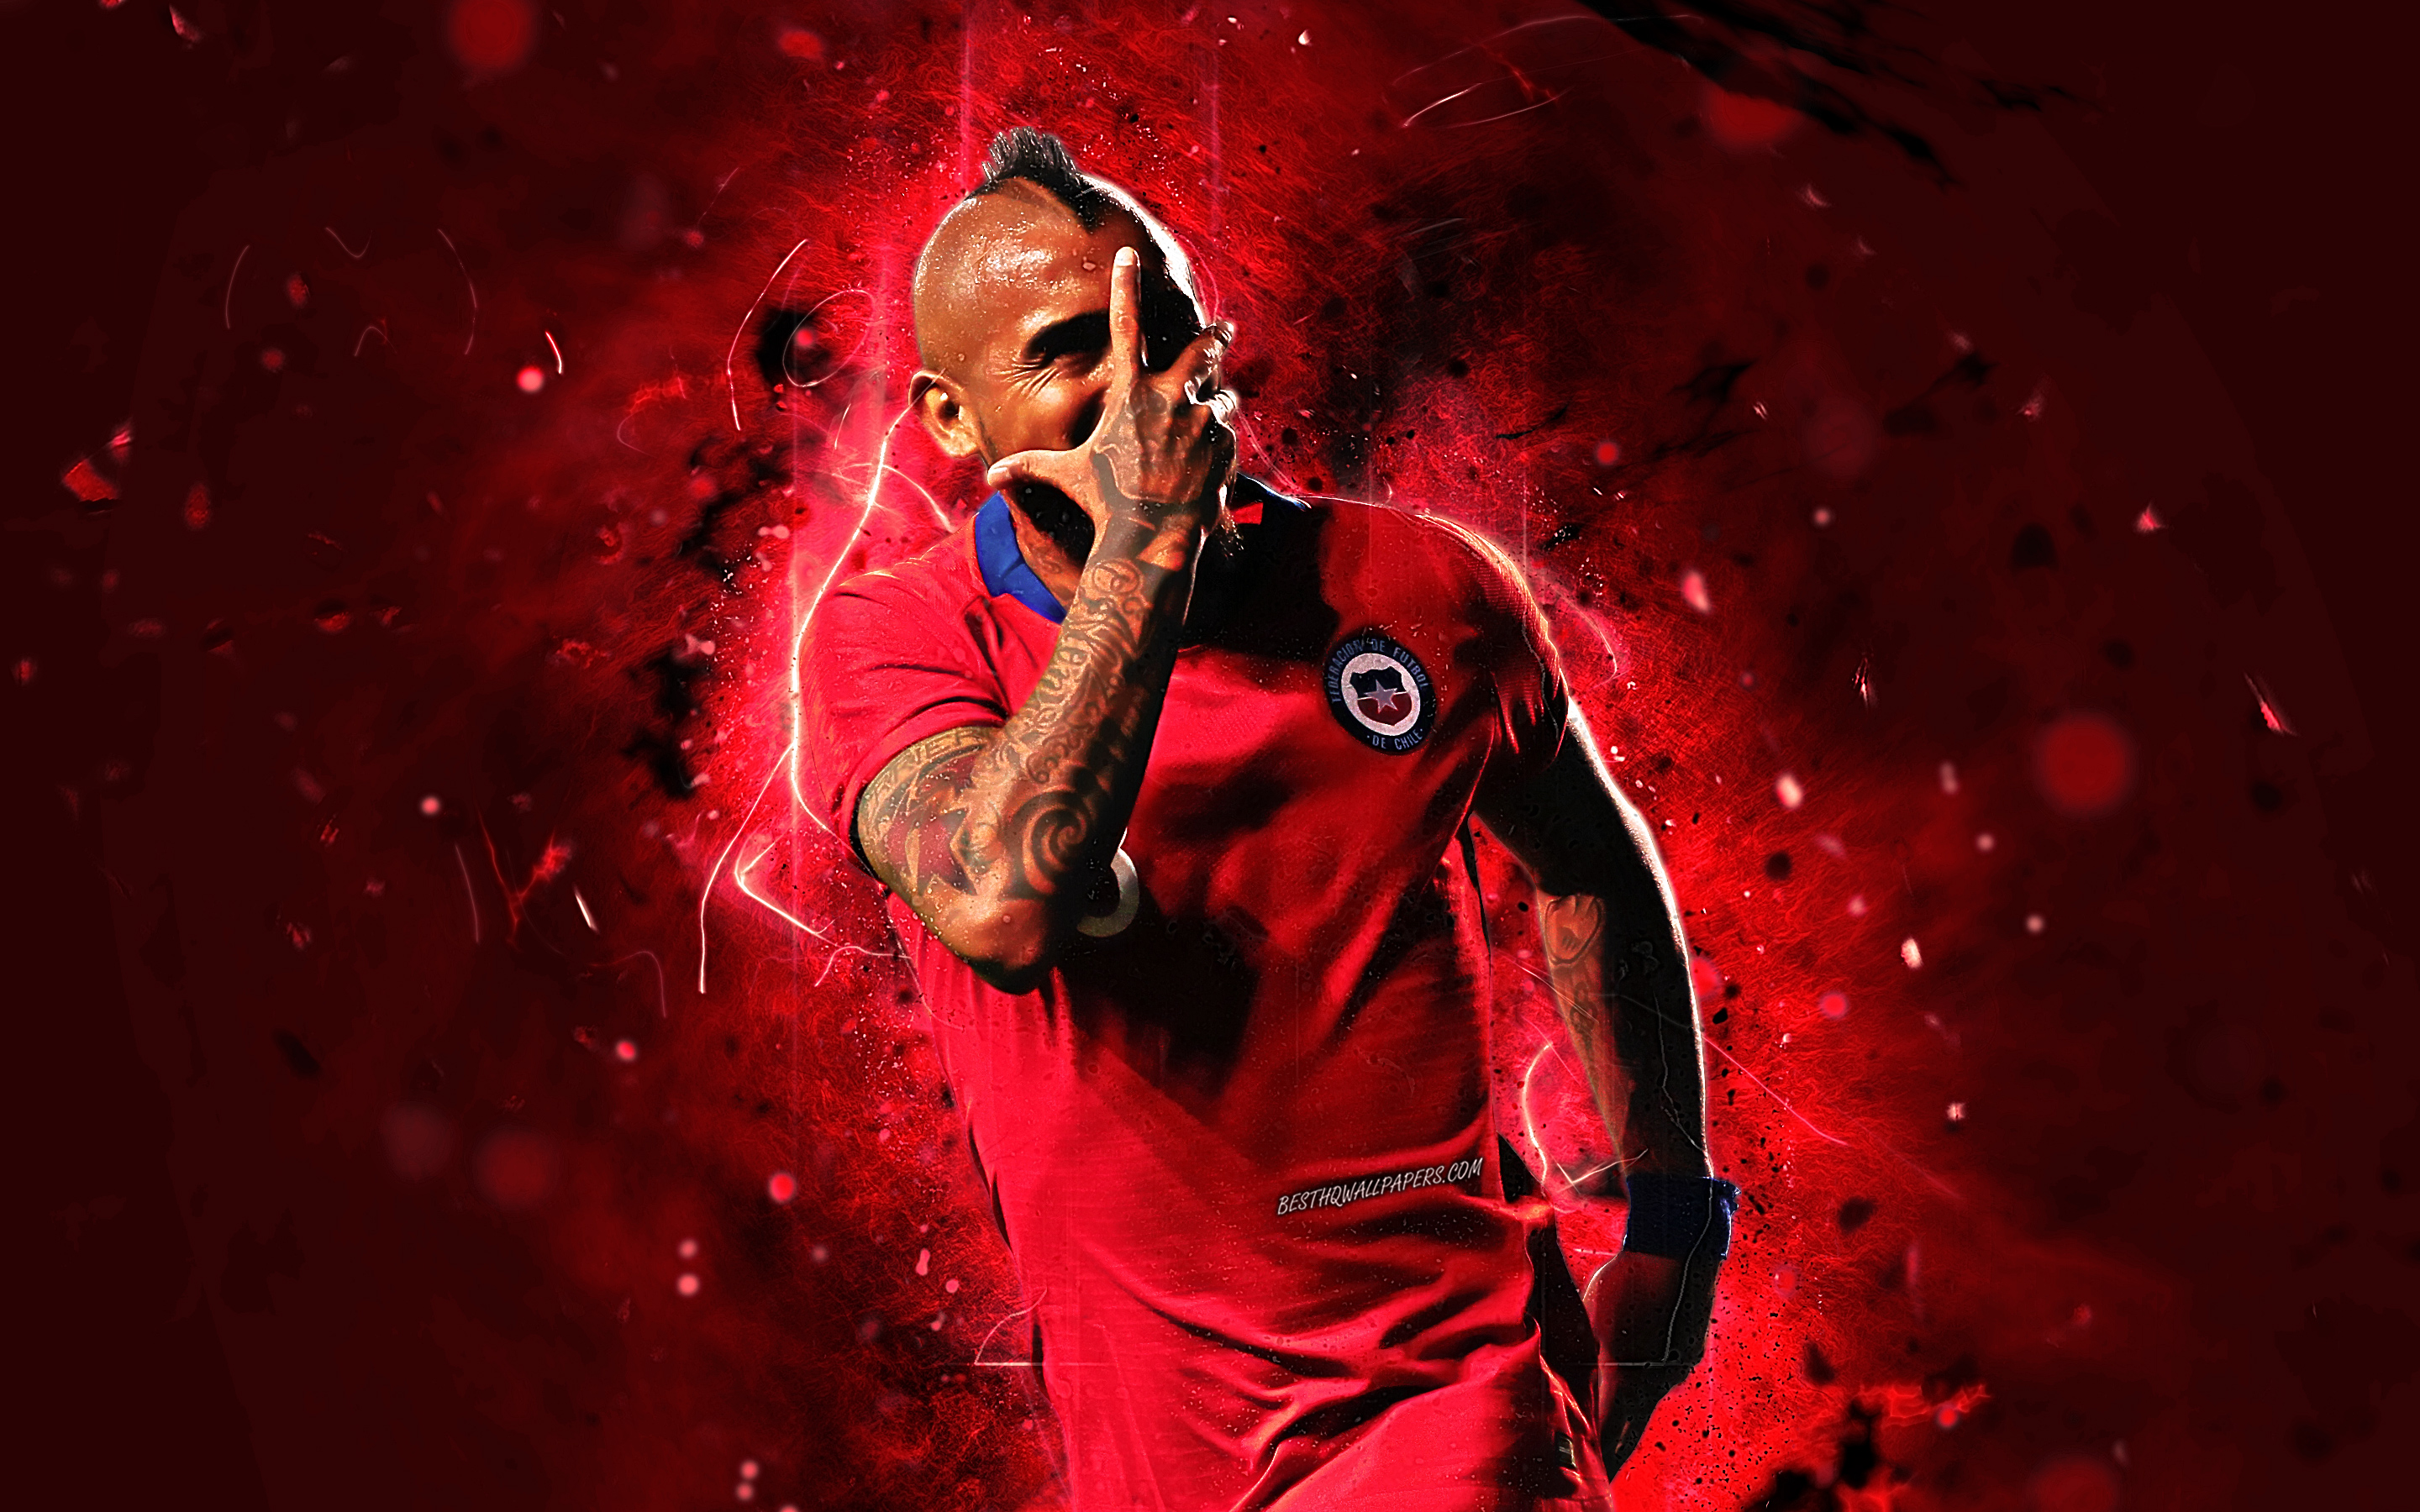 Arturo Vidal, Chilean, Footballer, Soccer wallpapers and backgrounds